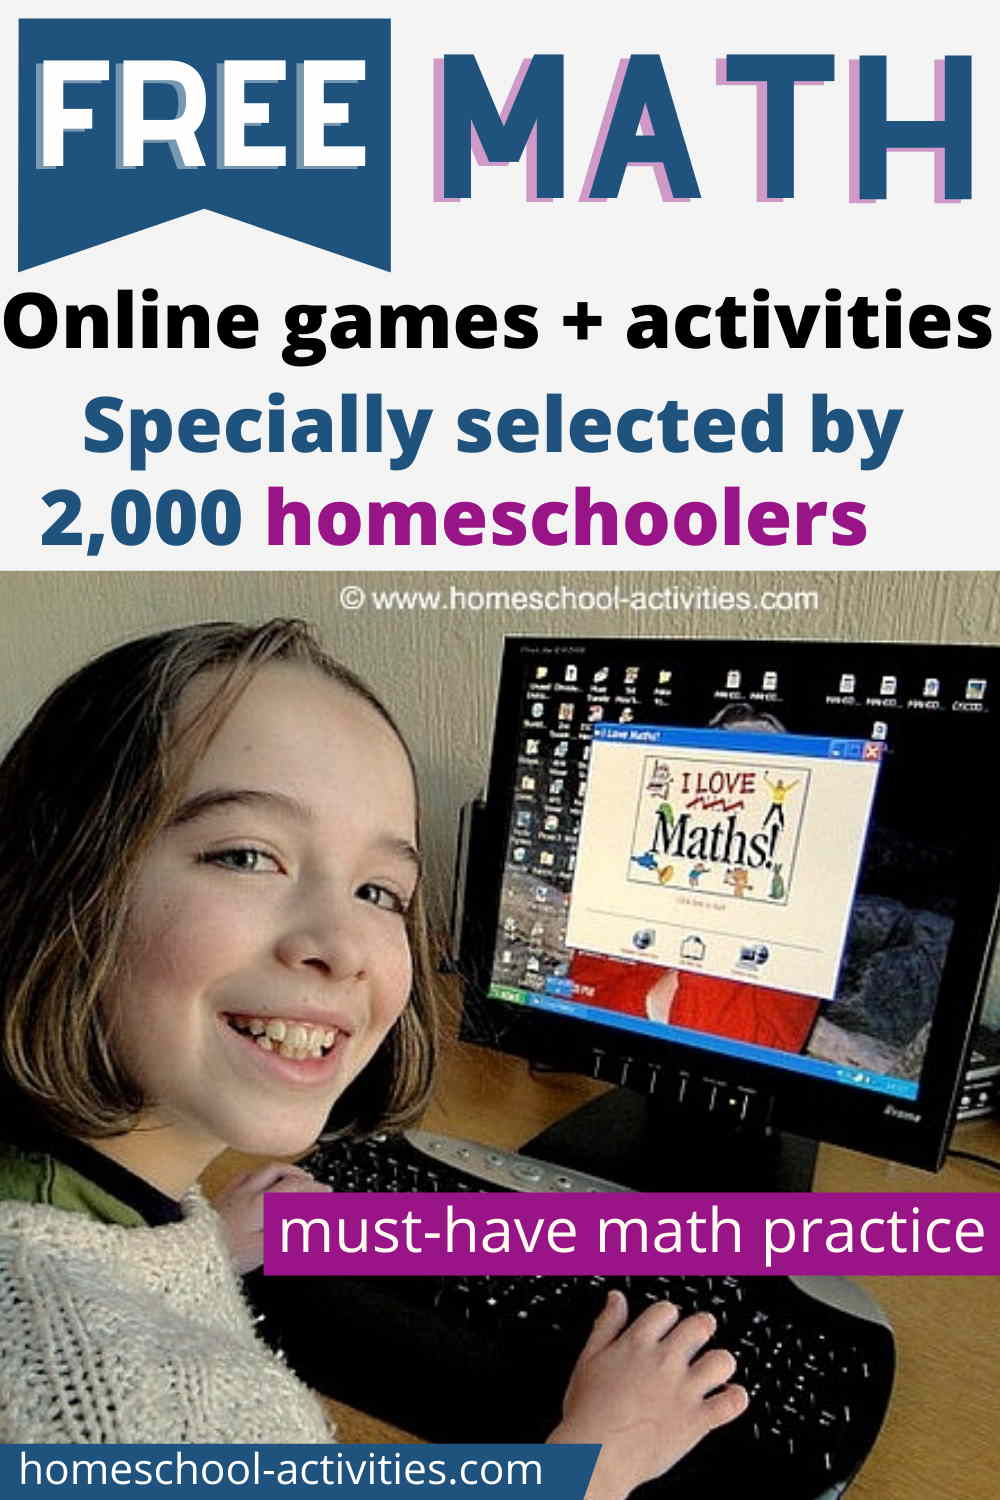 Free math games and activities for kids